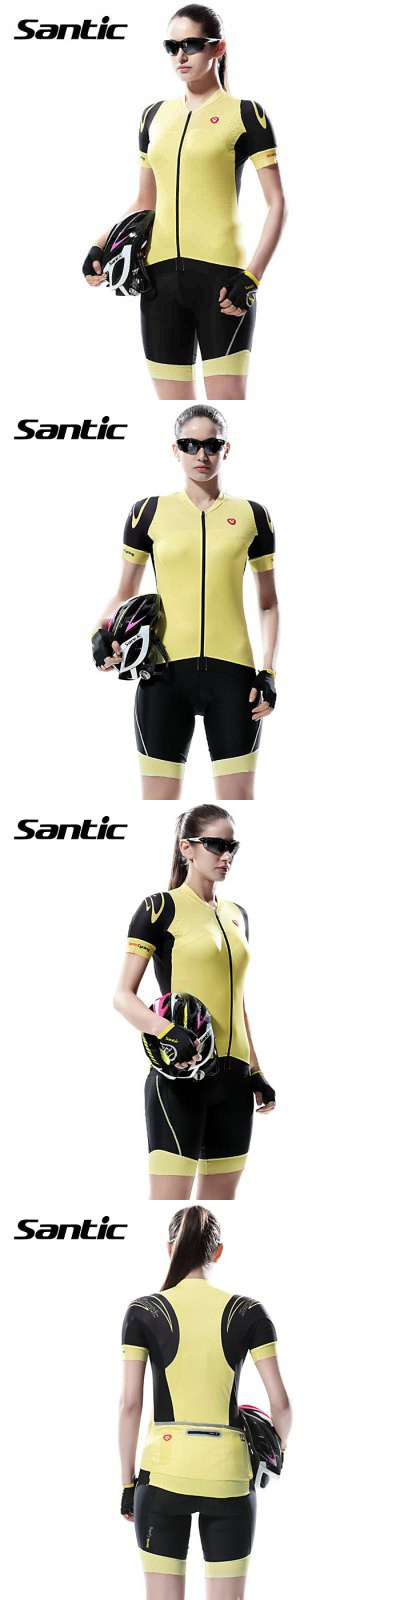 Cycling Clothings   Santic L5CT050Y Female Cycling Short Sleeves Suit